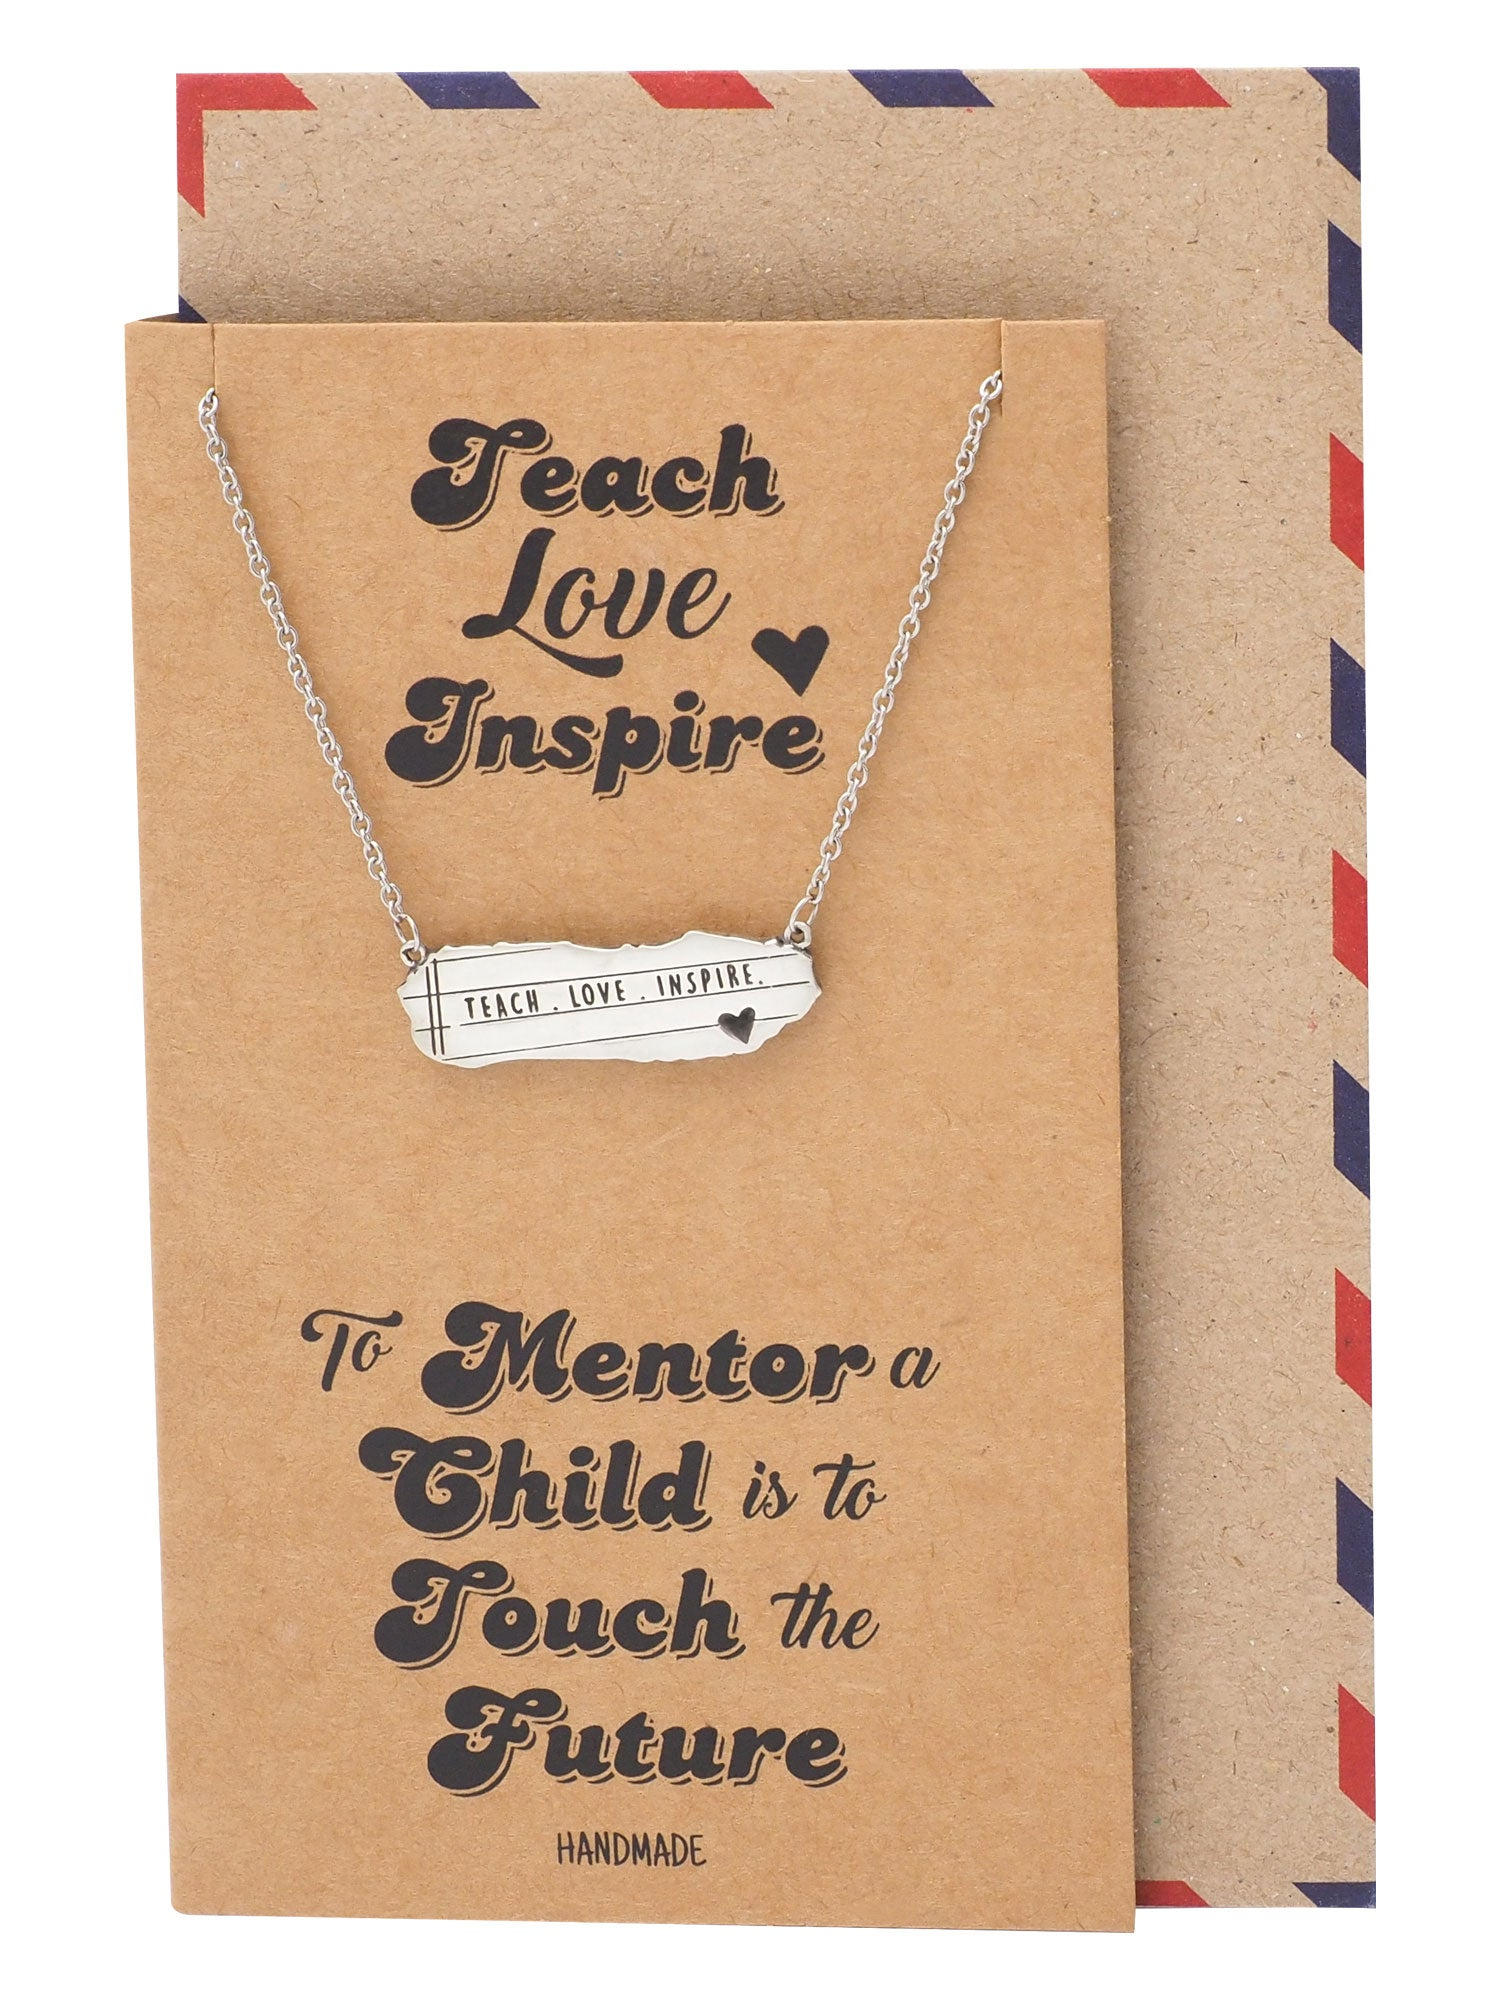 Lila Bar Pendant with Notebook Charm & Teach Love Inspire Inscription, Teacher Gifts, Greeting Card